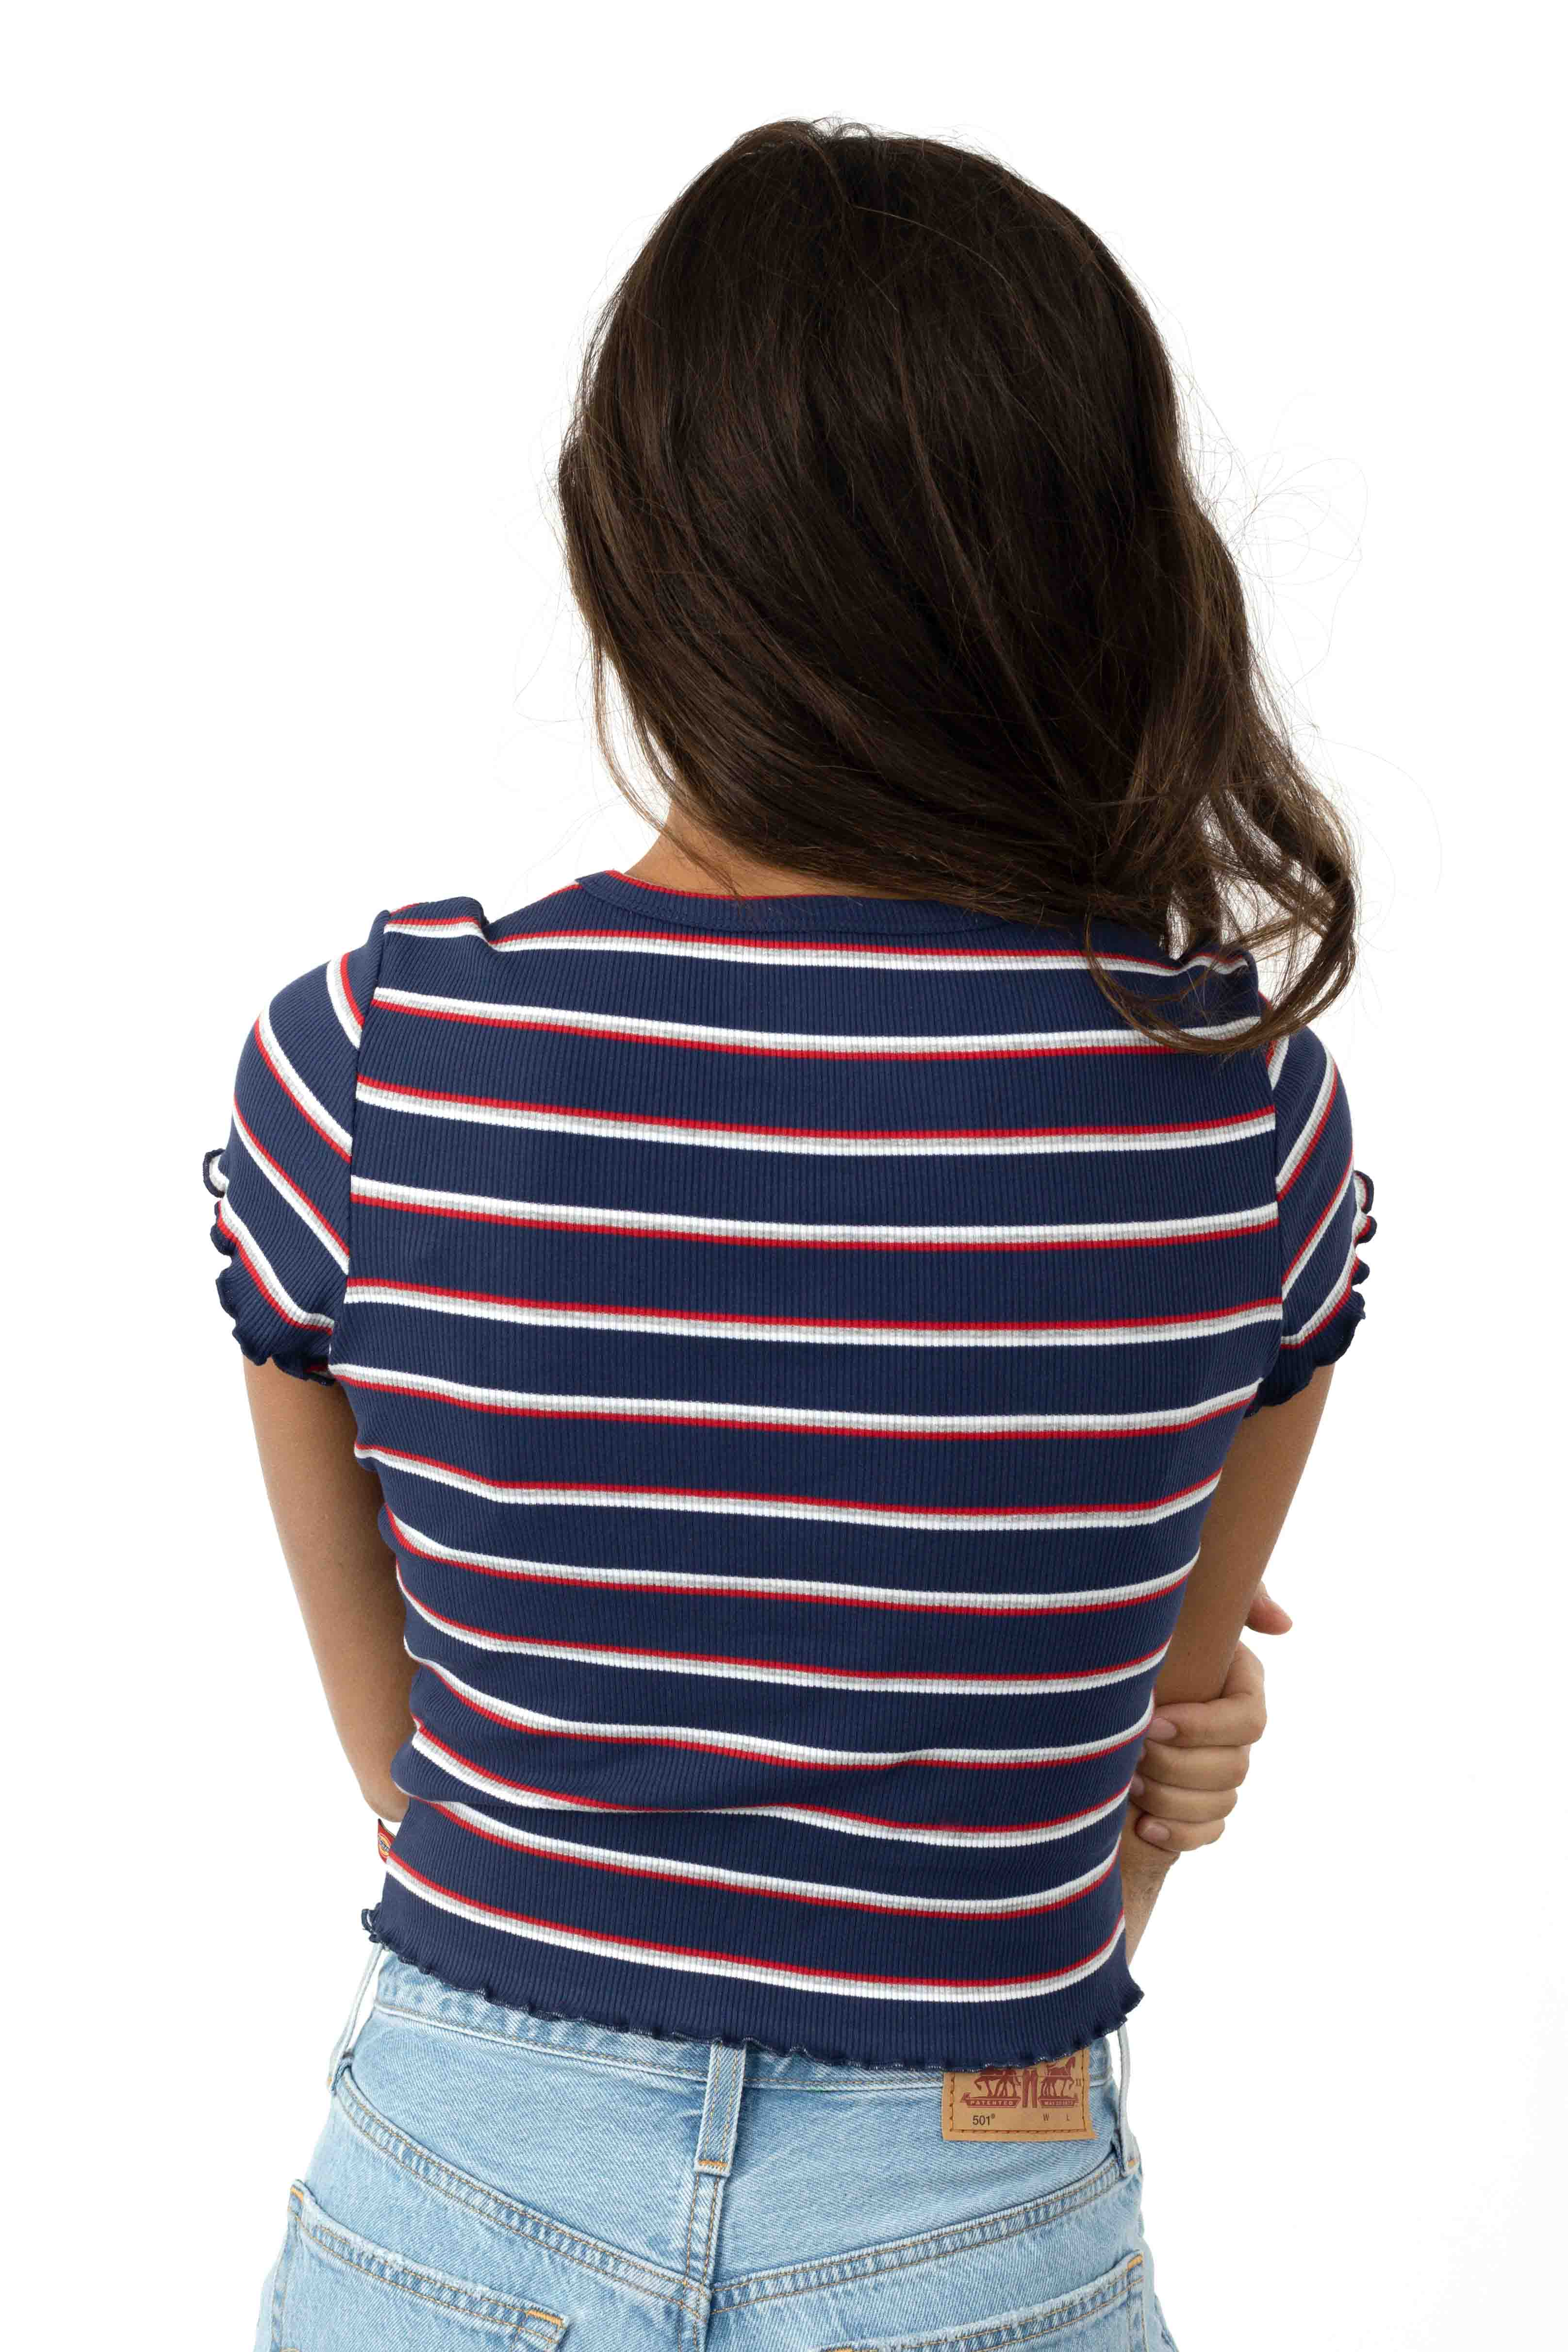 Scripty Dickies T-Shirt - Navy/White/Red 3